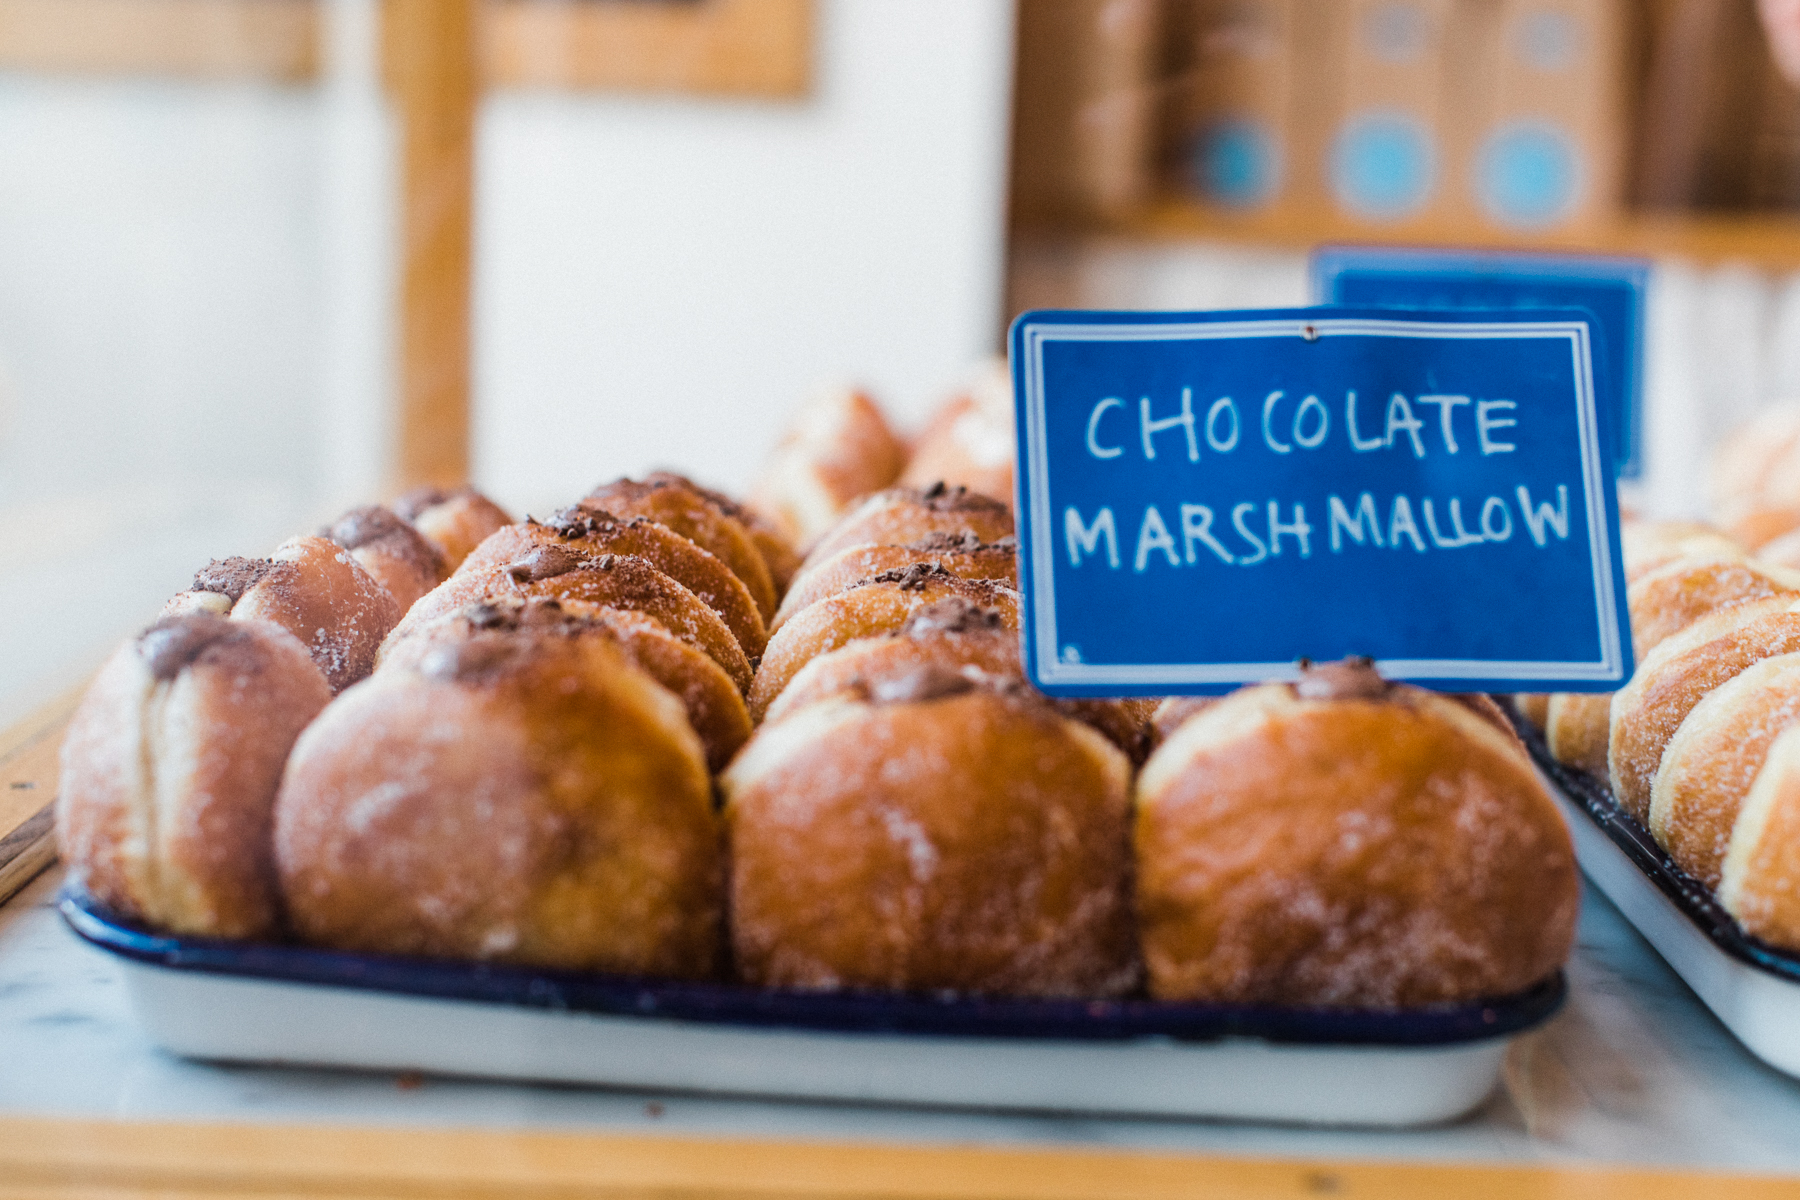 A tray of chocolate marshmallow filled doughnuts at General Porpoise Doughnuts in Seattle, Washington.